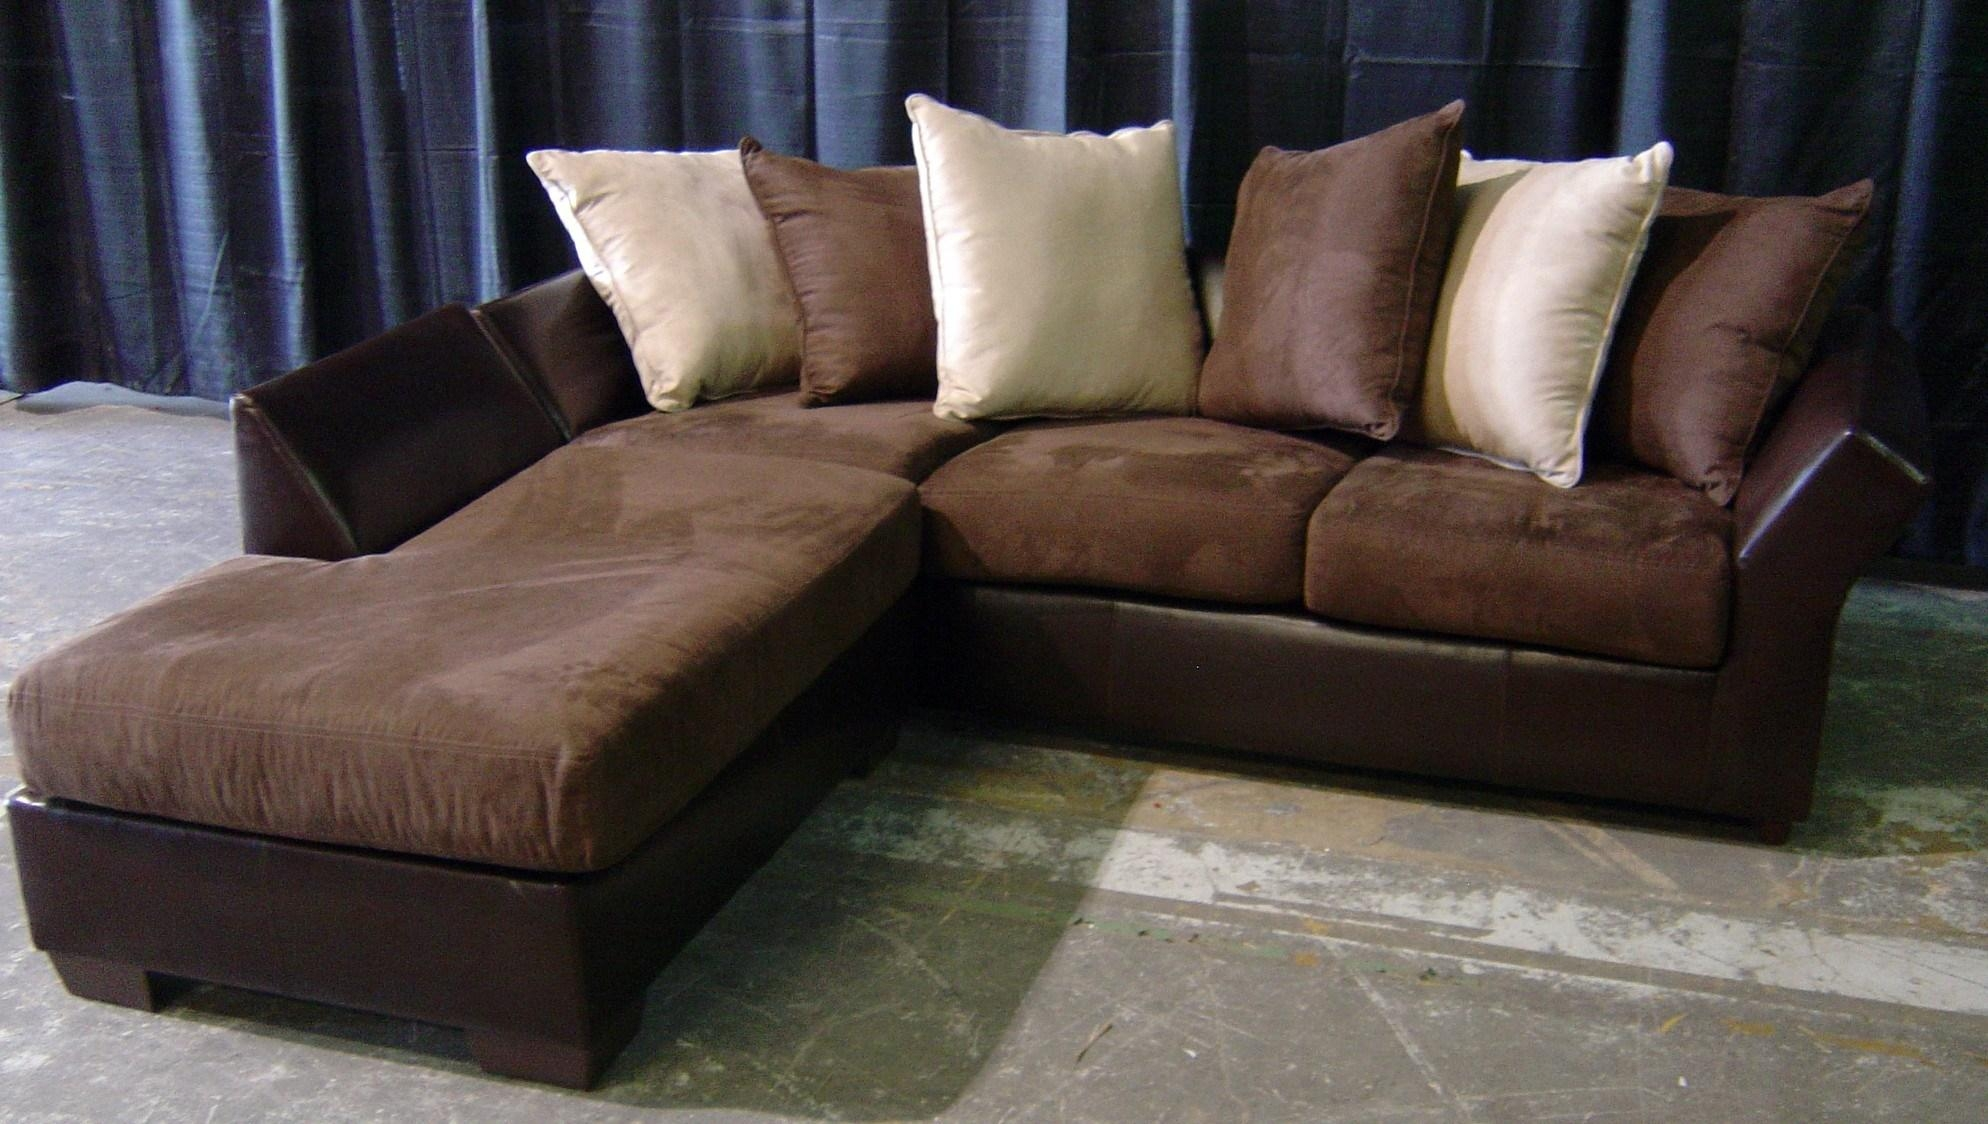 Furniture: Brown Leather Sectional Couchescraigslist Missoula Pertaining To Craigslist Sectional (Image 2 of 15)